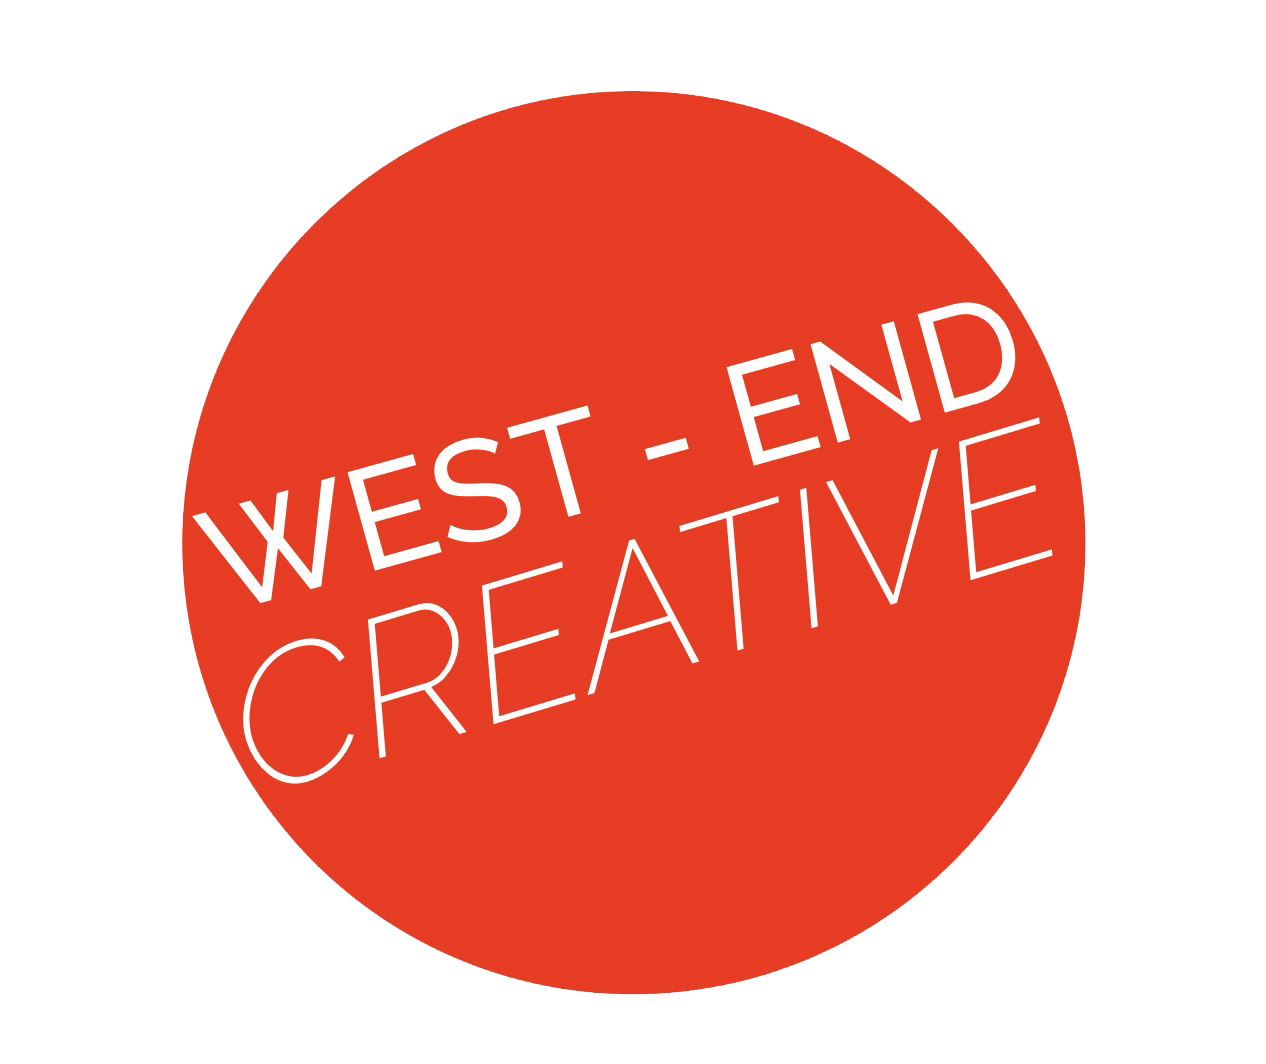 West End Creative